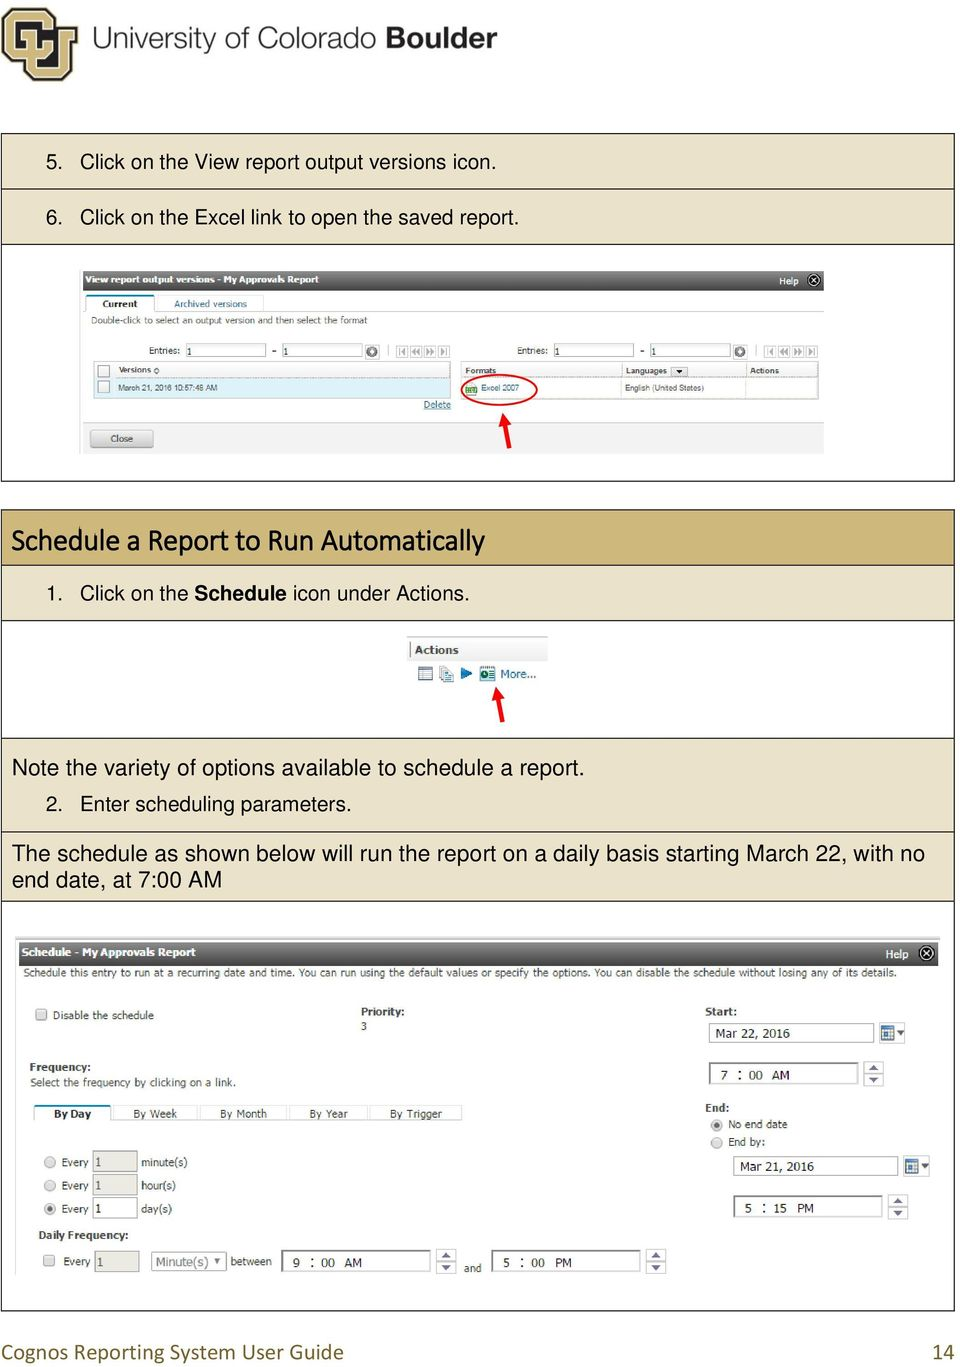 Note the variety of options available to schedule a report. 2. Enter scheduling parameters.